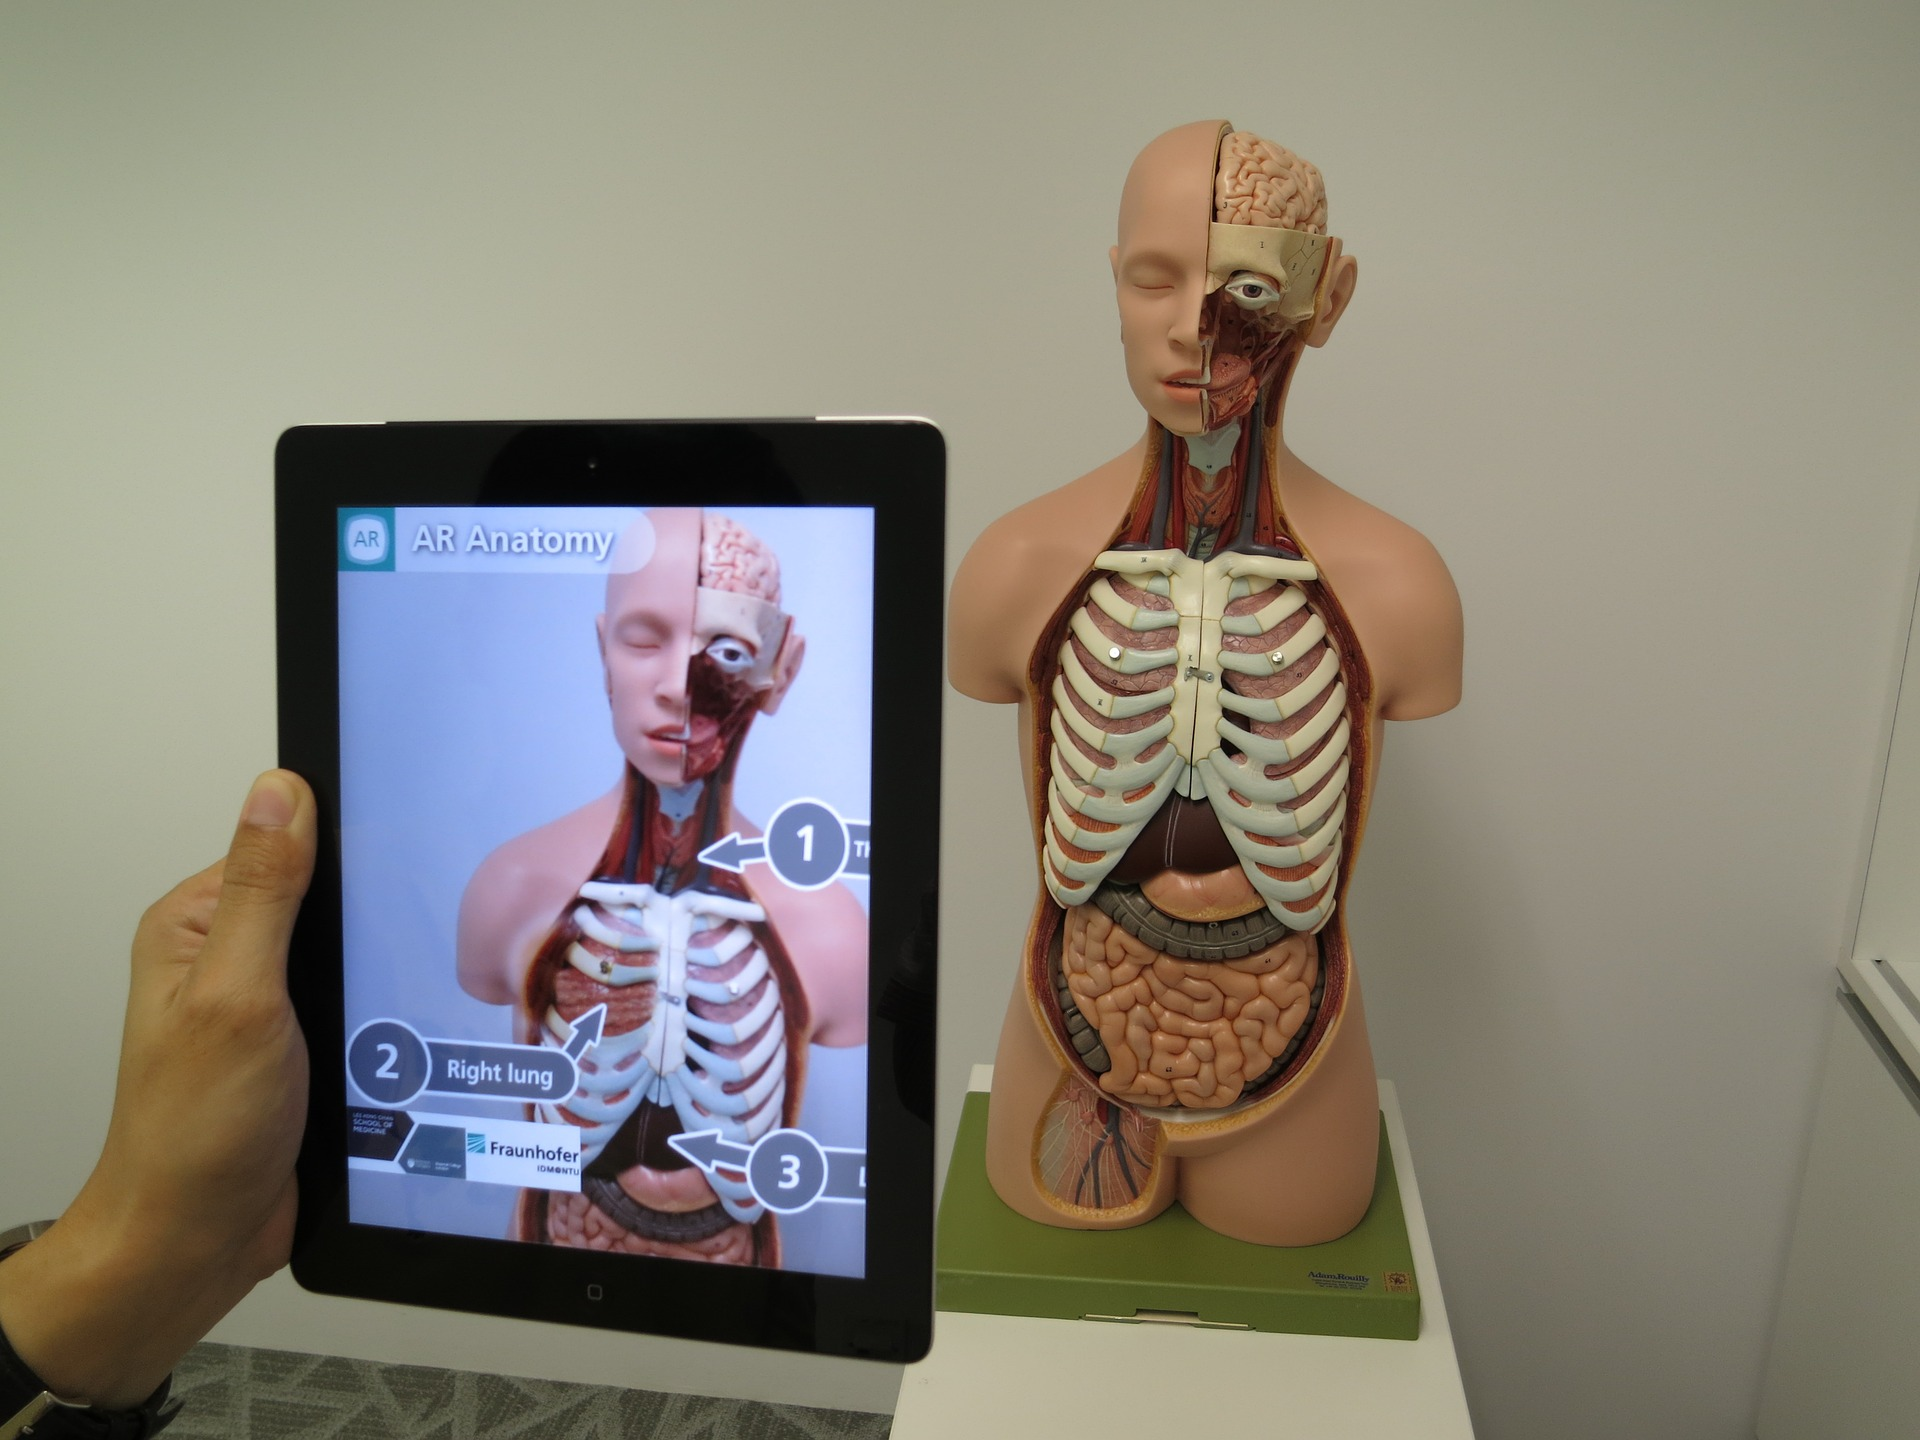 Tablet with AR viewing an anatomical model